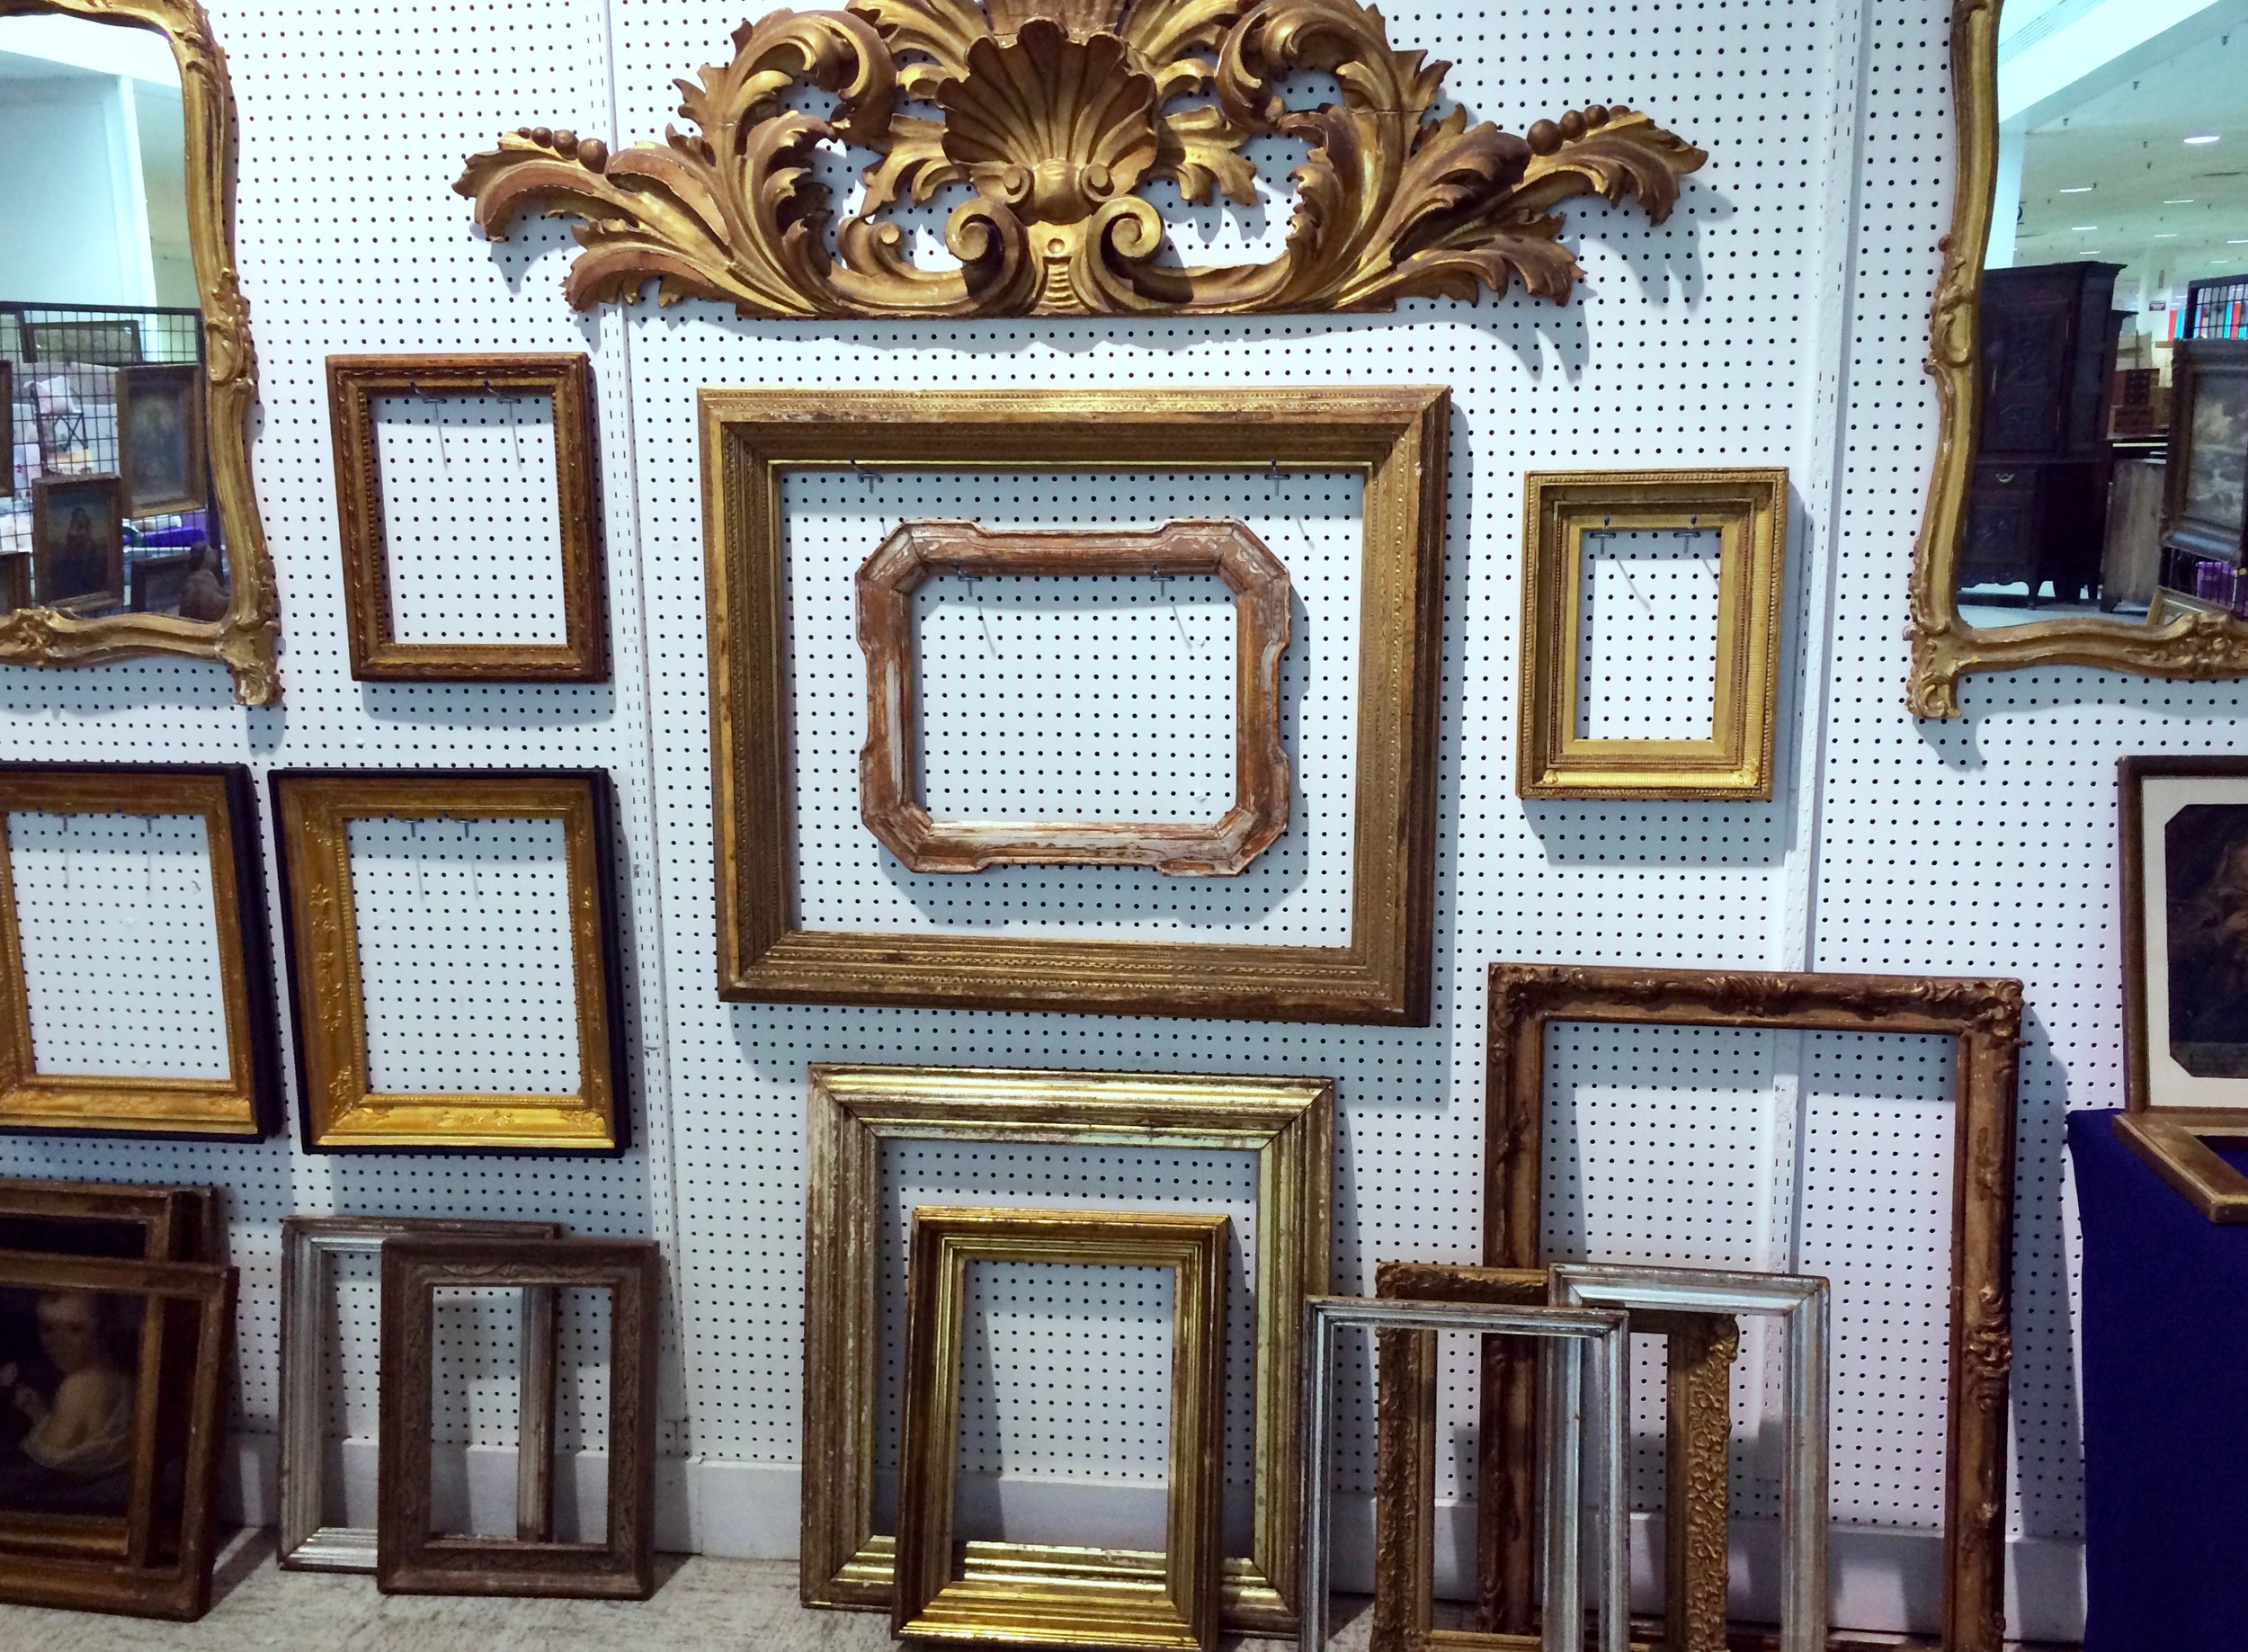 BOYD ANTIQUES   Boyd Antiques has specialized in antique frames and quality framing, fine art and period Continental furniture and decorations since the early 1990s. Boyd Antiques joined The Summit Antiques Center in 2017, and features antique Continental and American frames and framing from the 17th century to Modernist and Contemporary styles. By appointment. E-mail bantq@comcast.net. Call (973) 220-1079.